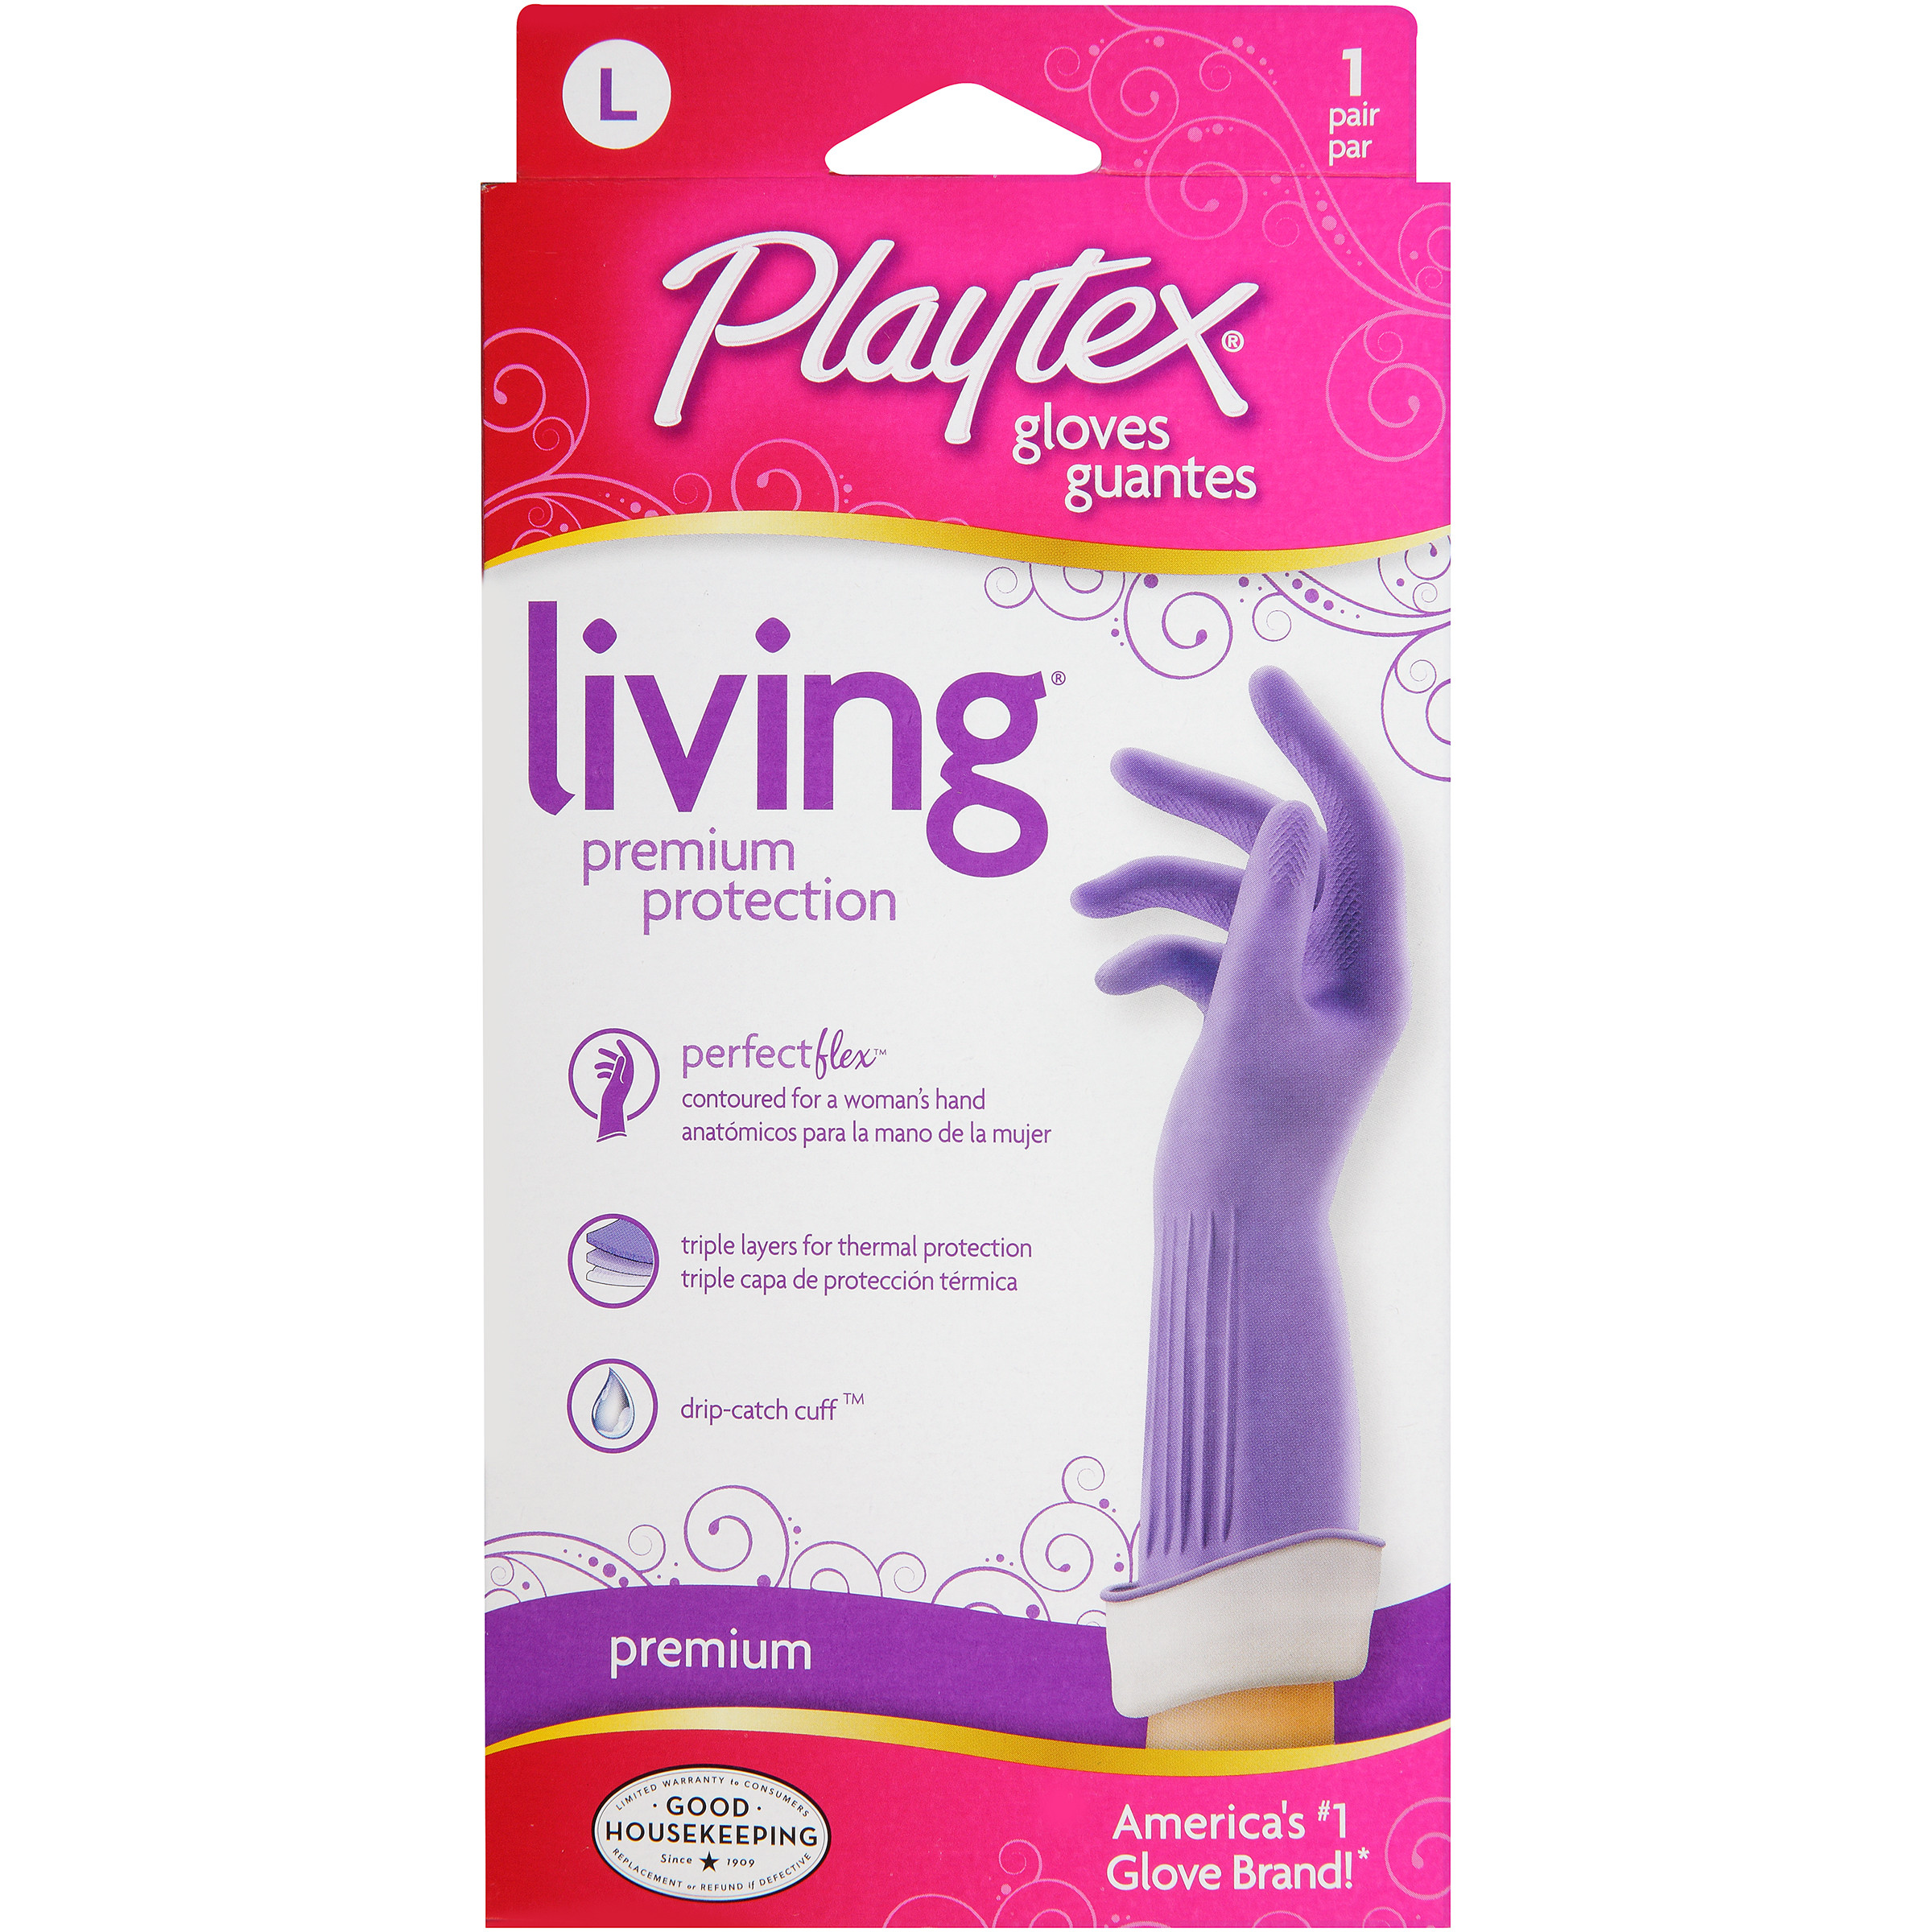 Playtex Living Reusable Gloves With Drip-Catch Cuff Large - 1 Pair